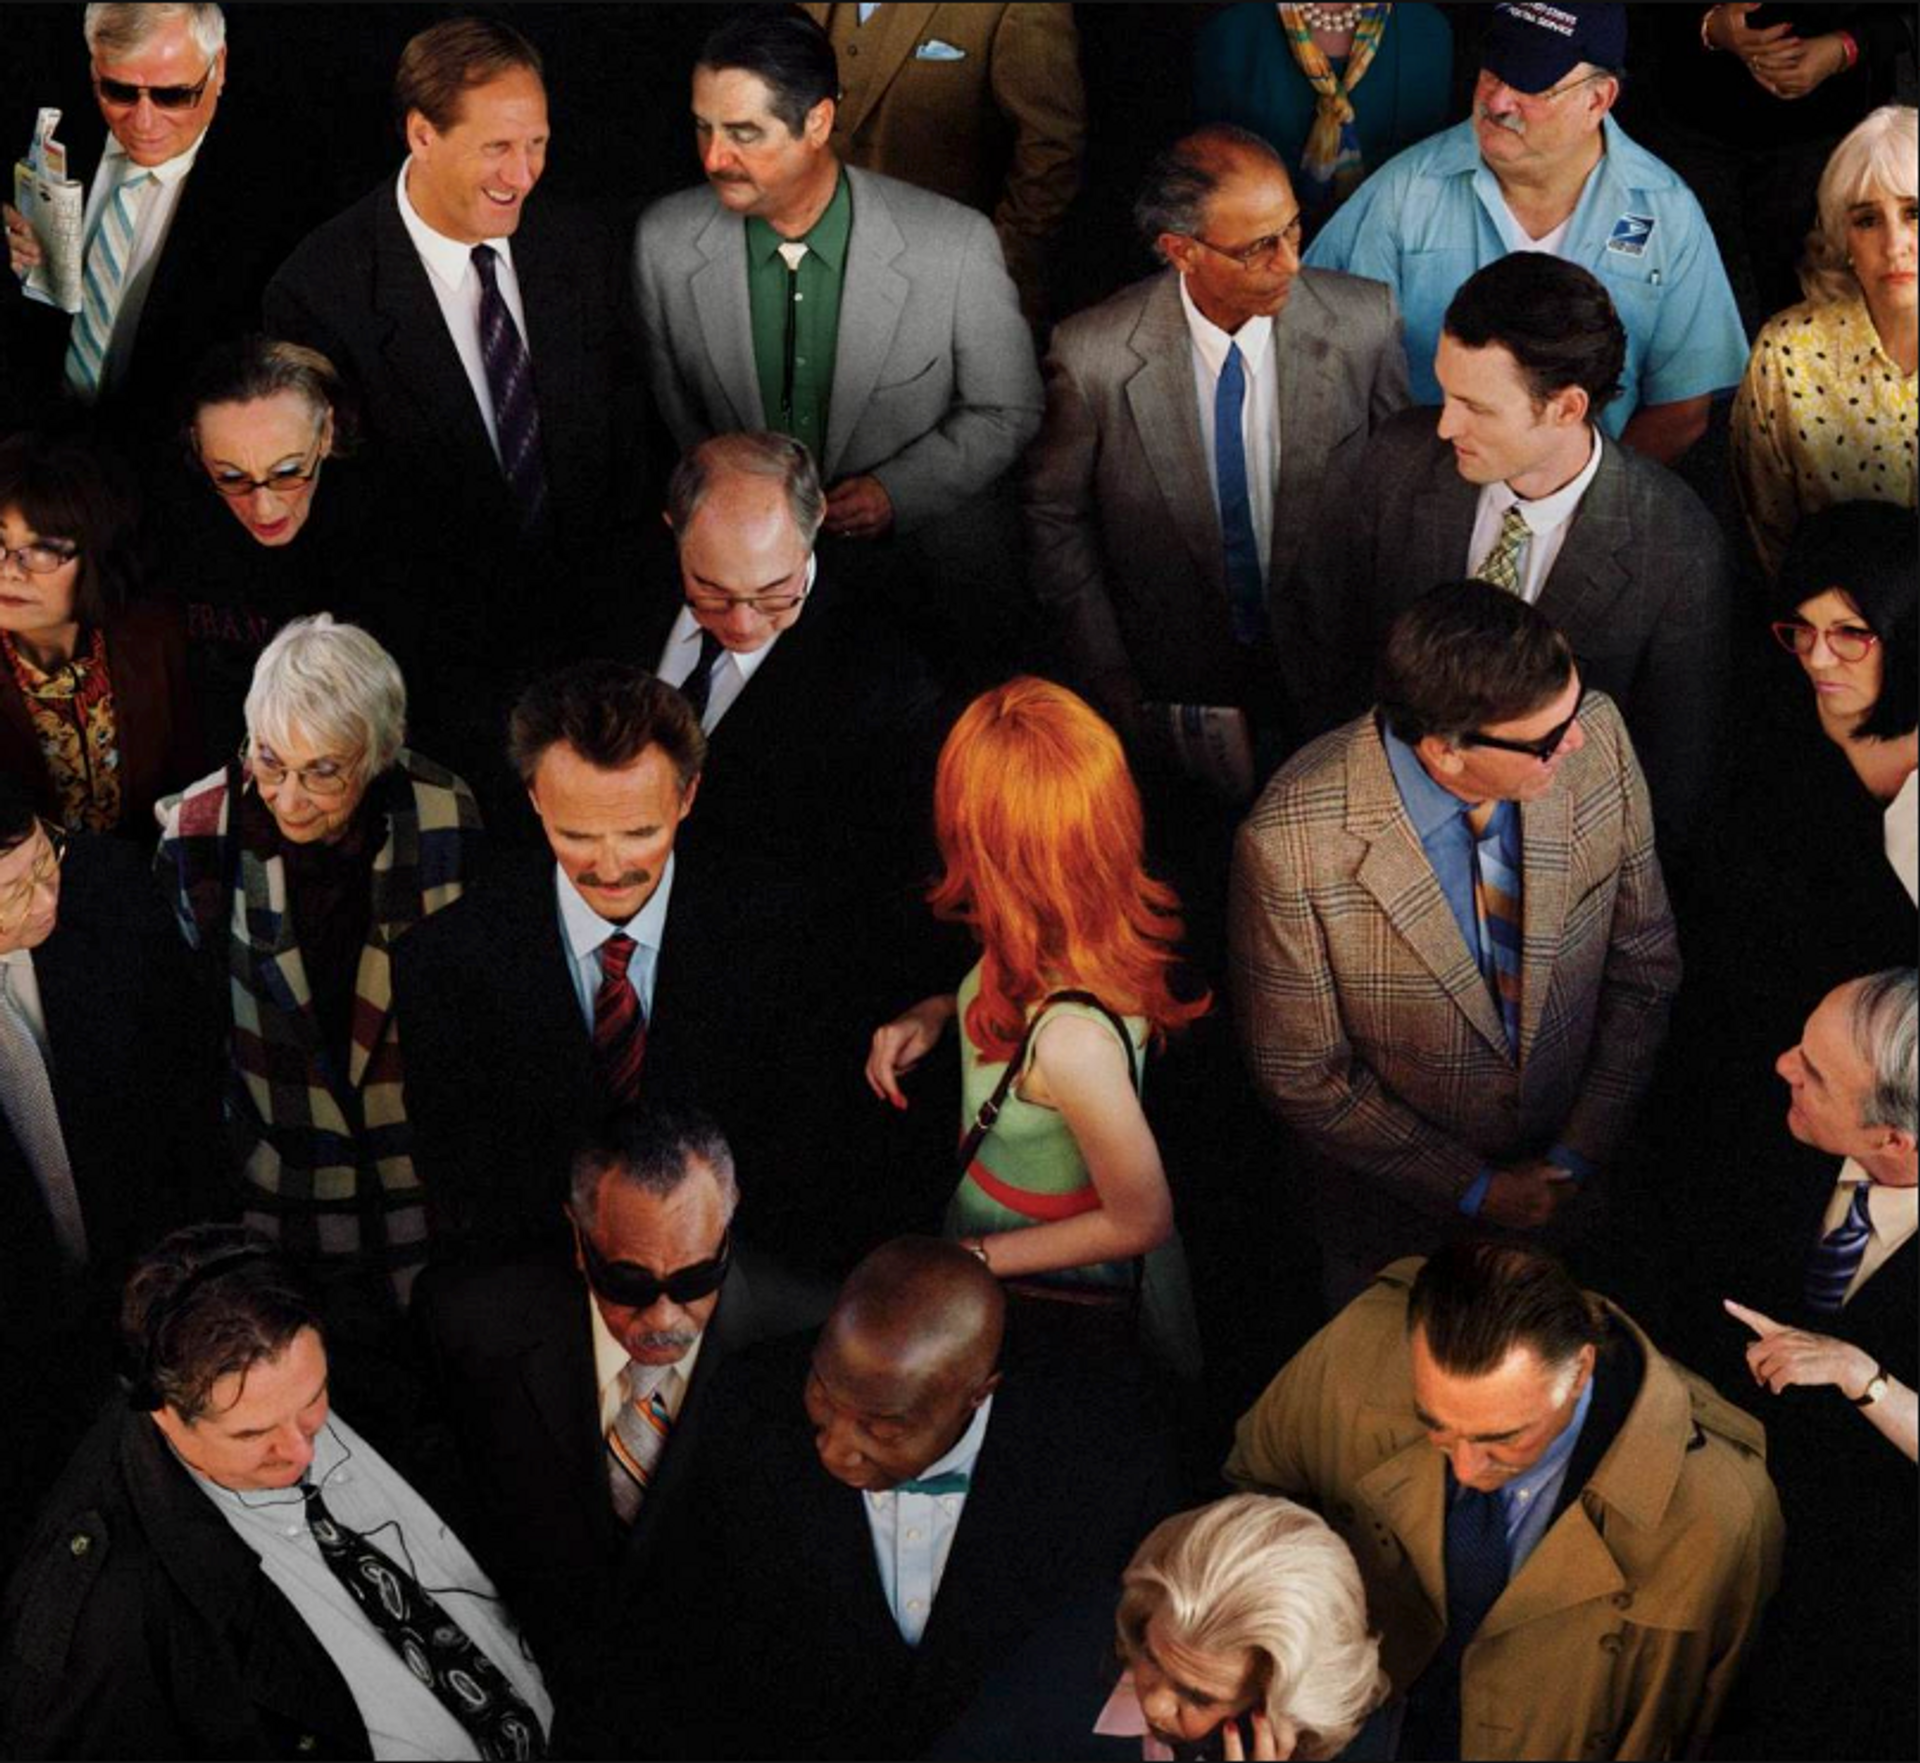 Alex Prager's Hollywood & Vine (2014) is part of the exhibition In Production: Art and the Studio System Collection of the Yuz Foundation. Courtesy of Alex Prager Studio and Lehmann Maupin, New York, Hong Kong and Seoul